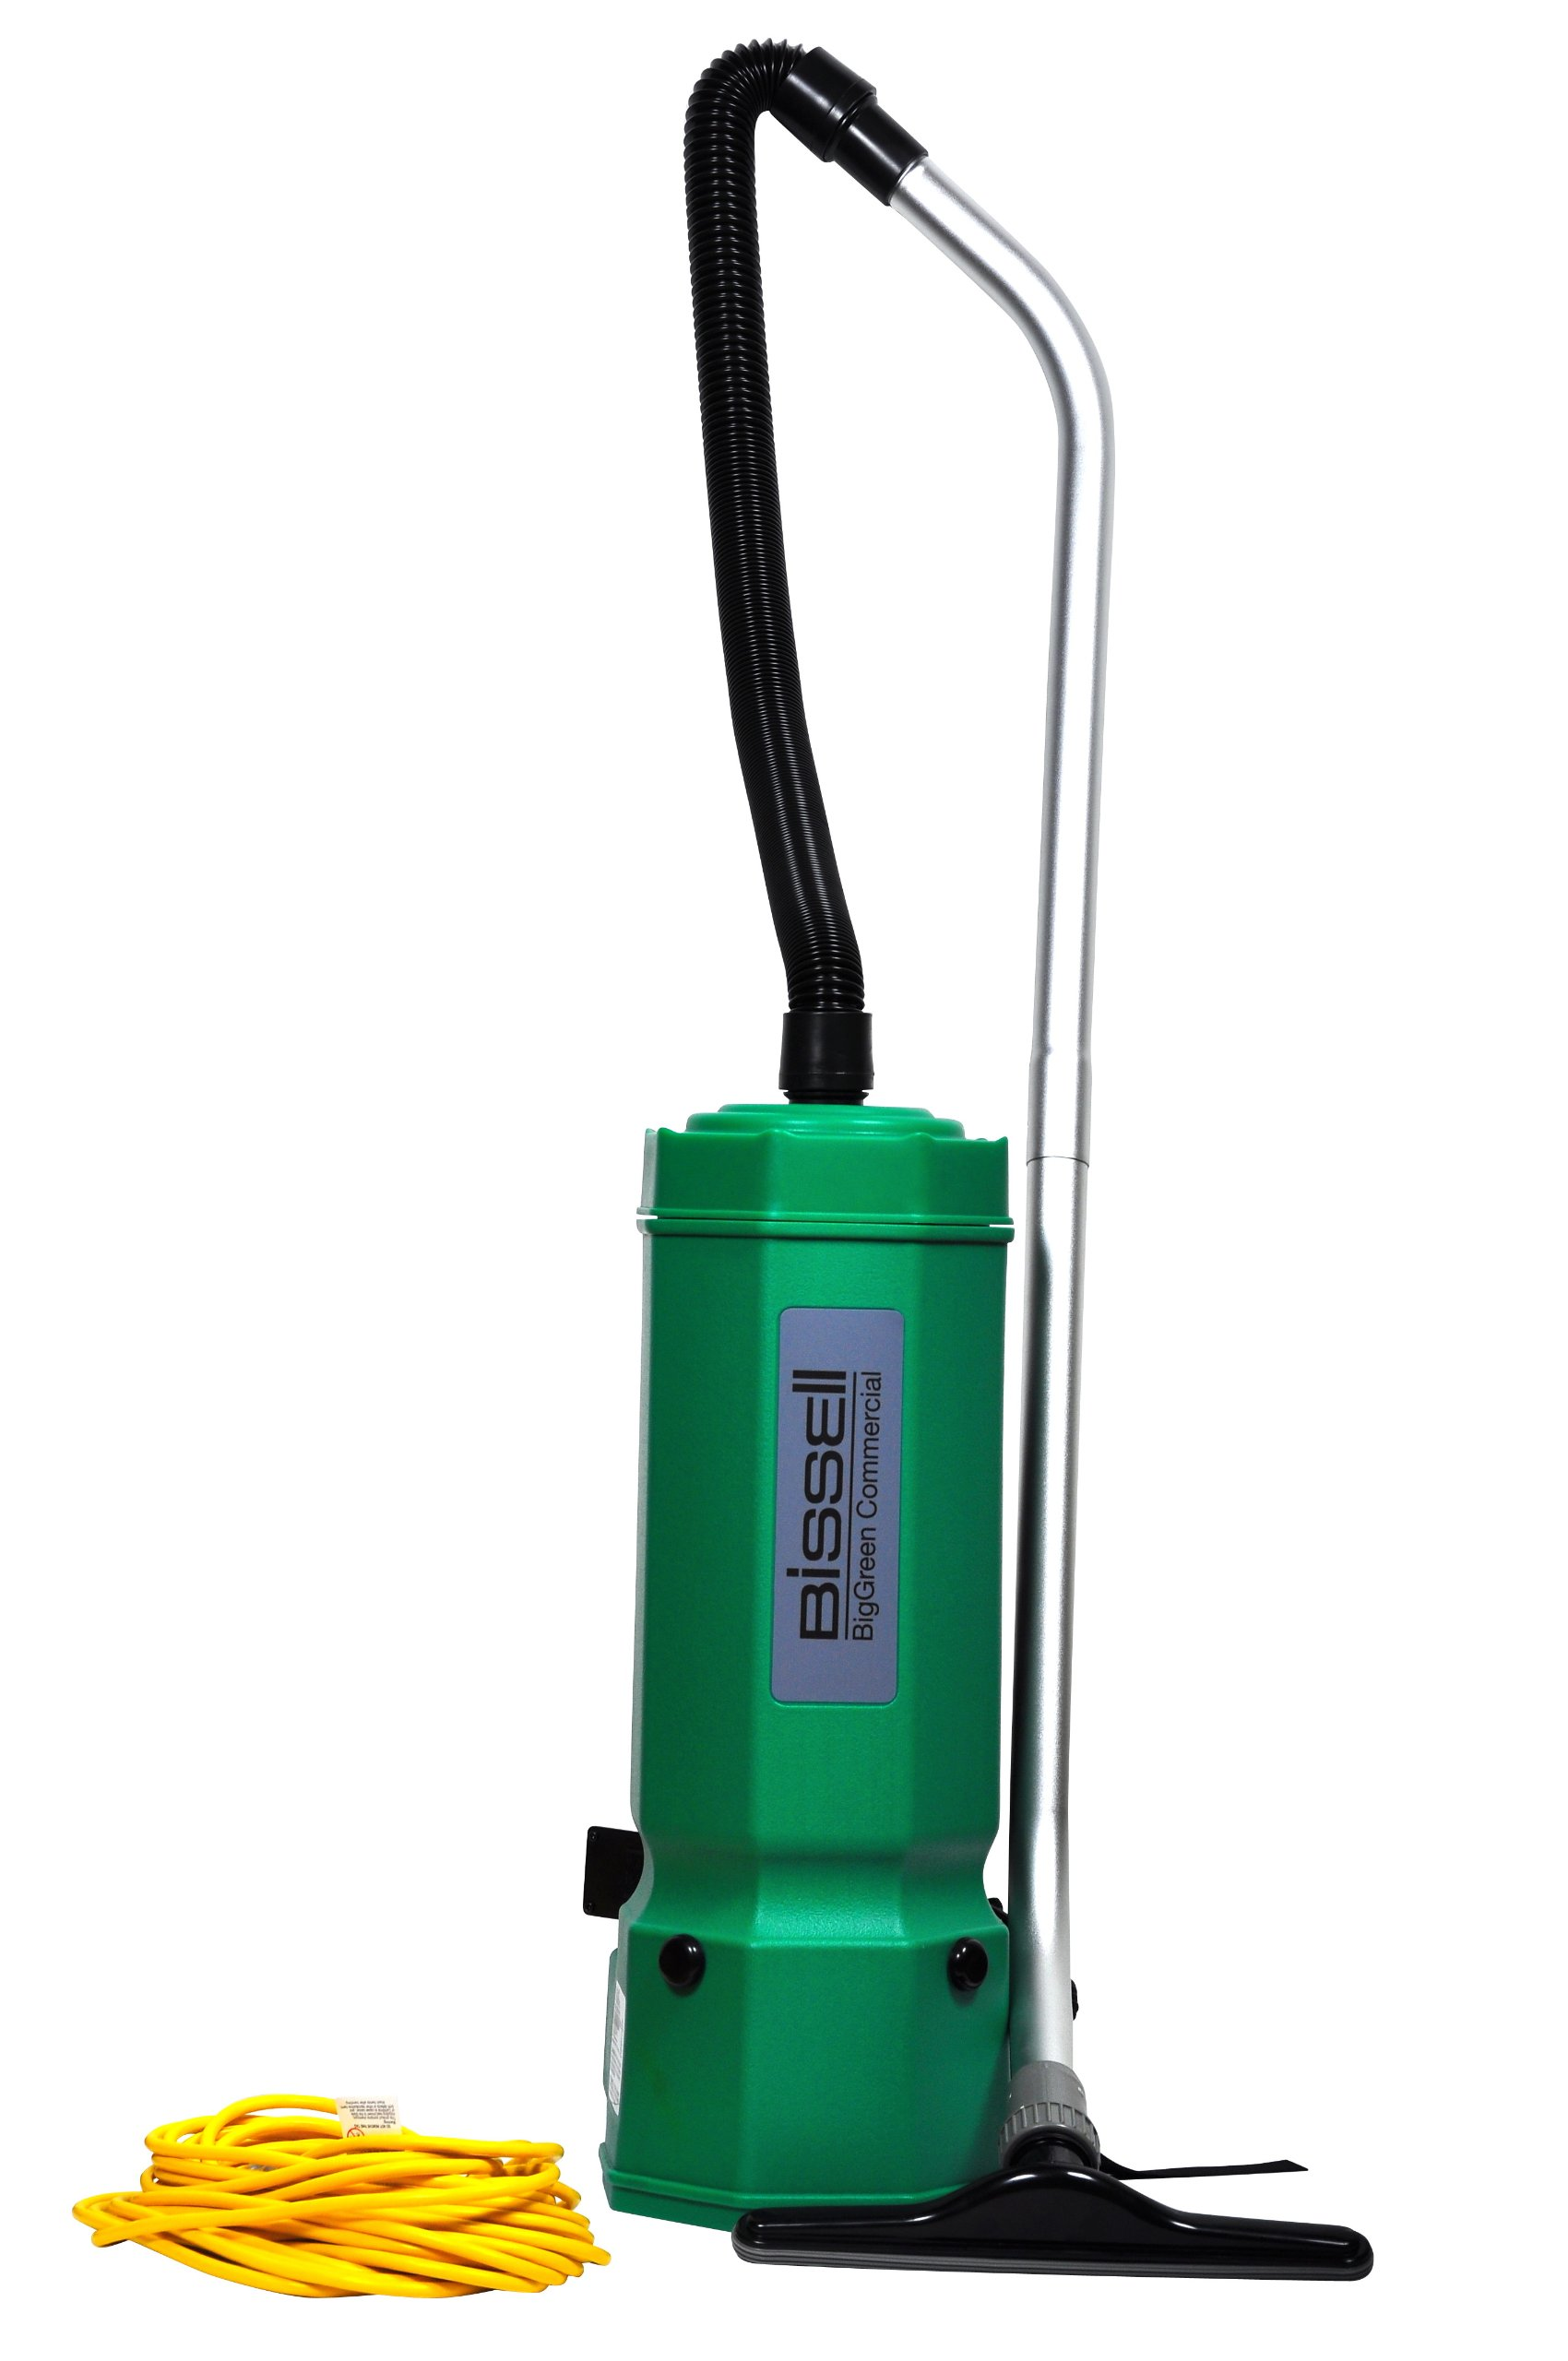 BISSELL COMMERCIAL 10 qt. 120V, 1175W Backpack Vacuum Cleaner by Bissell Commercial